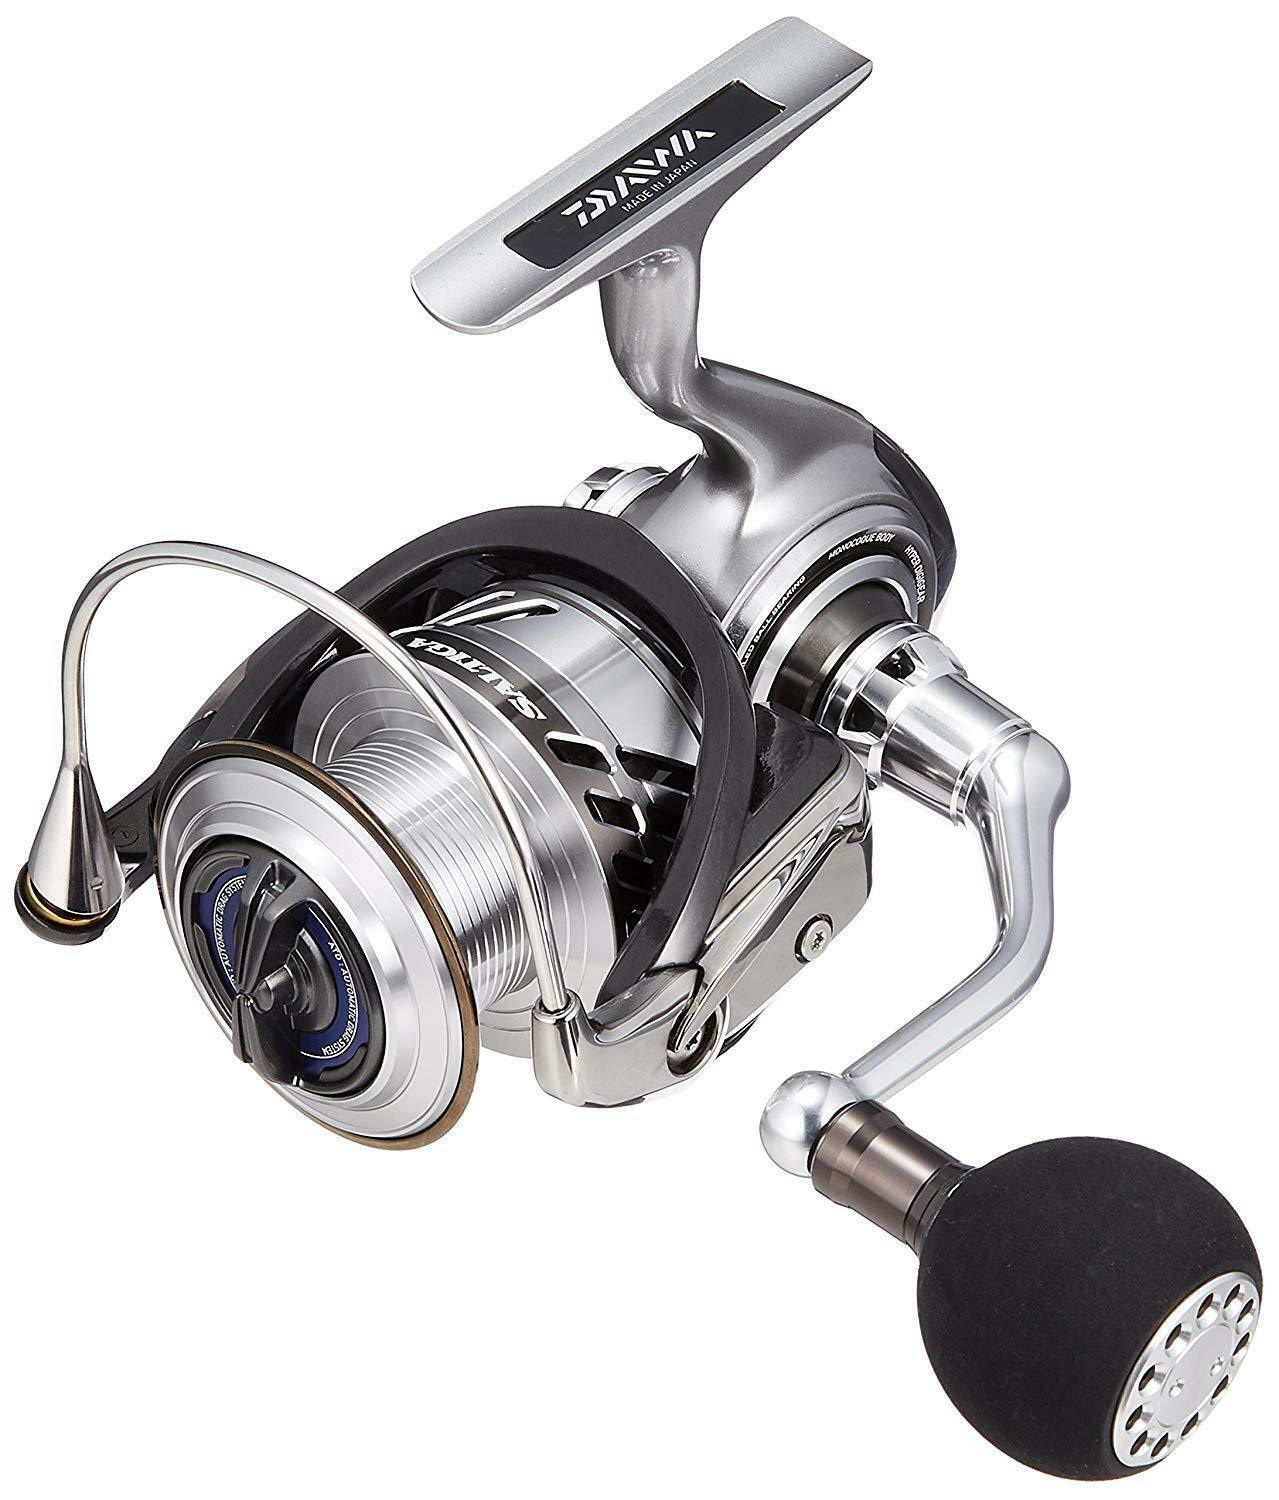 Daiwa 17 SALTIGA BJ 3500H Spinning Reel MAGSEELD ABS II SALT WATER New in Box